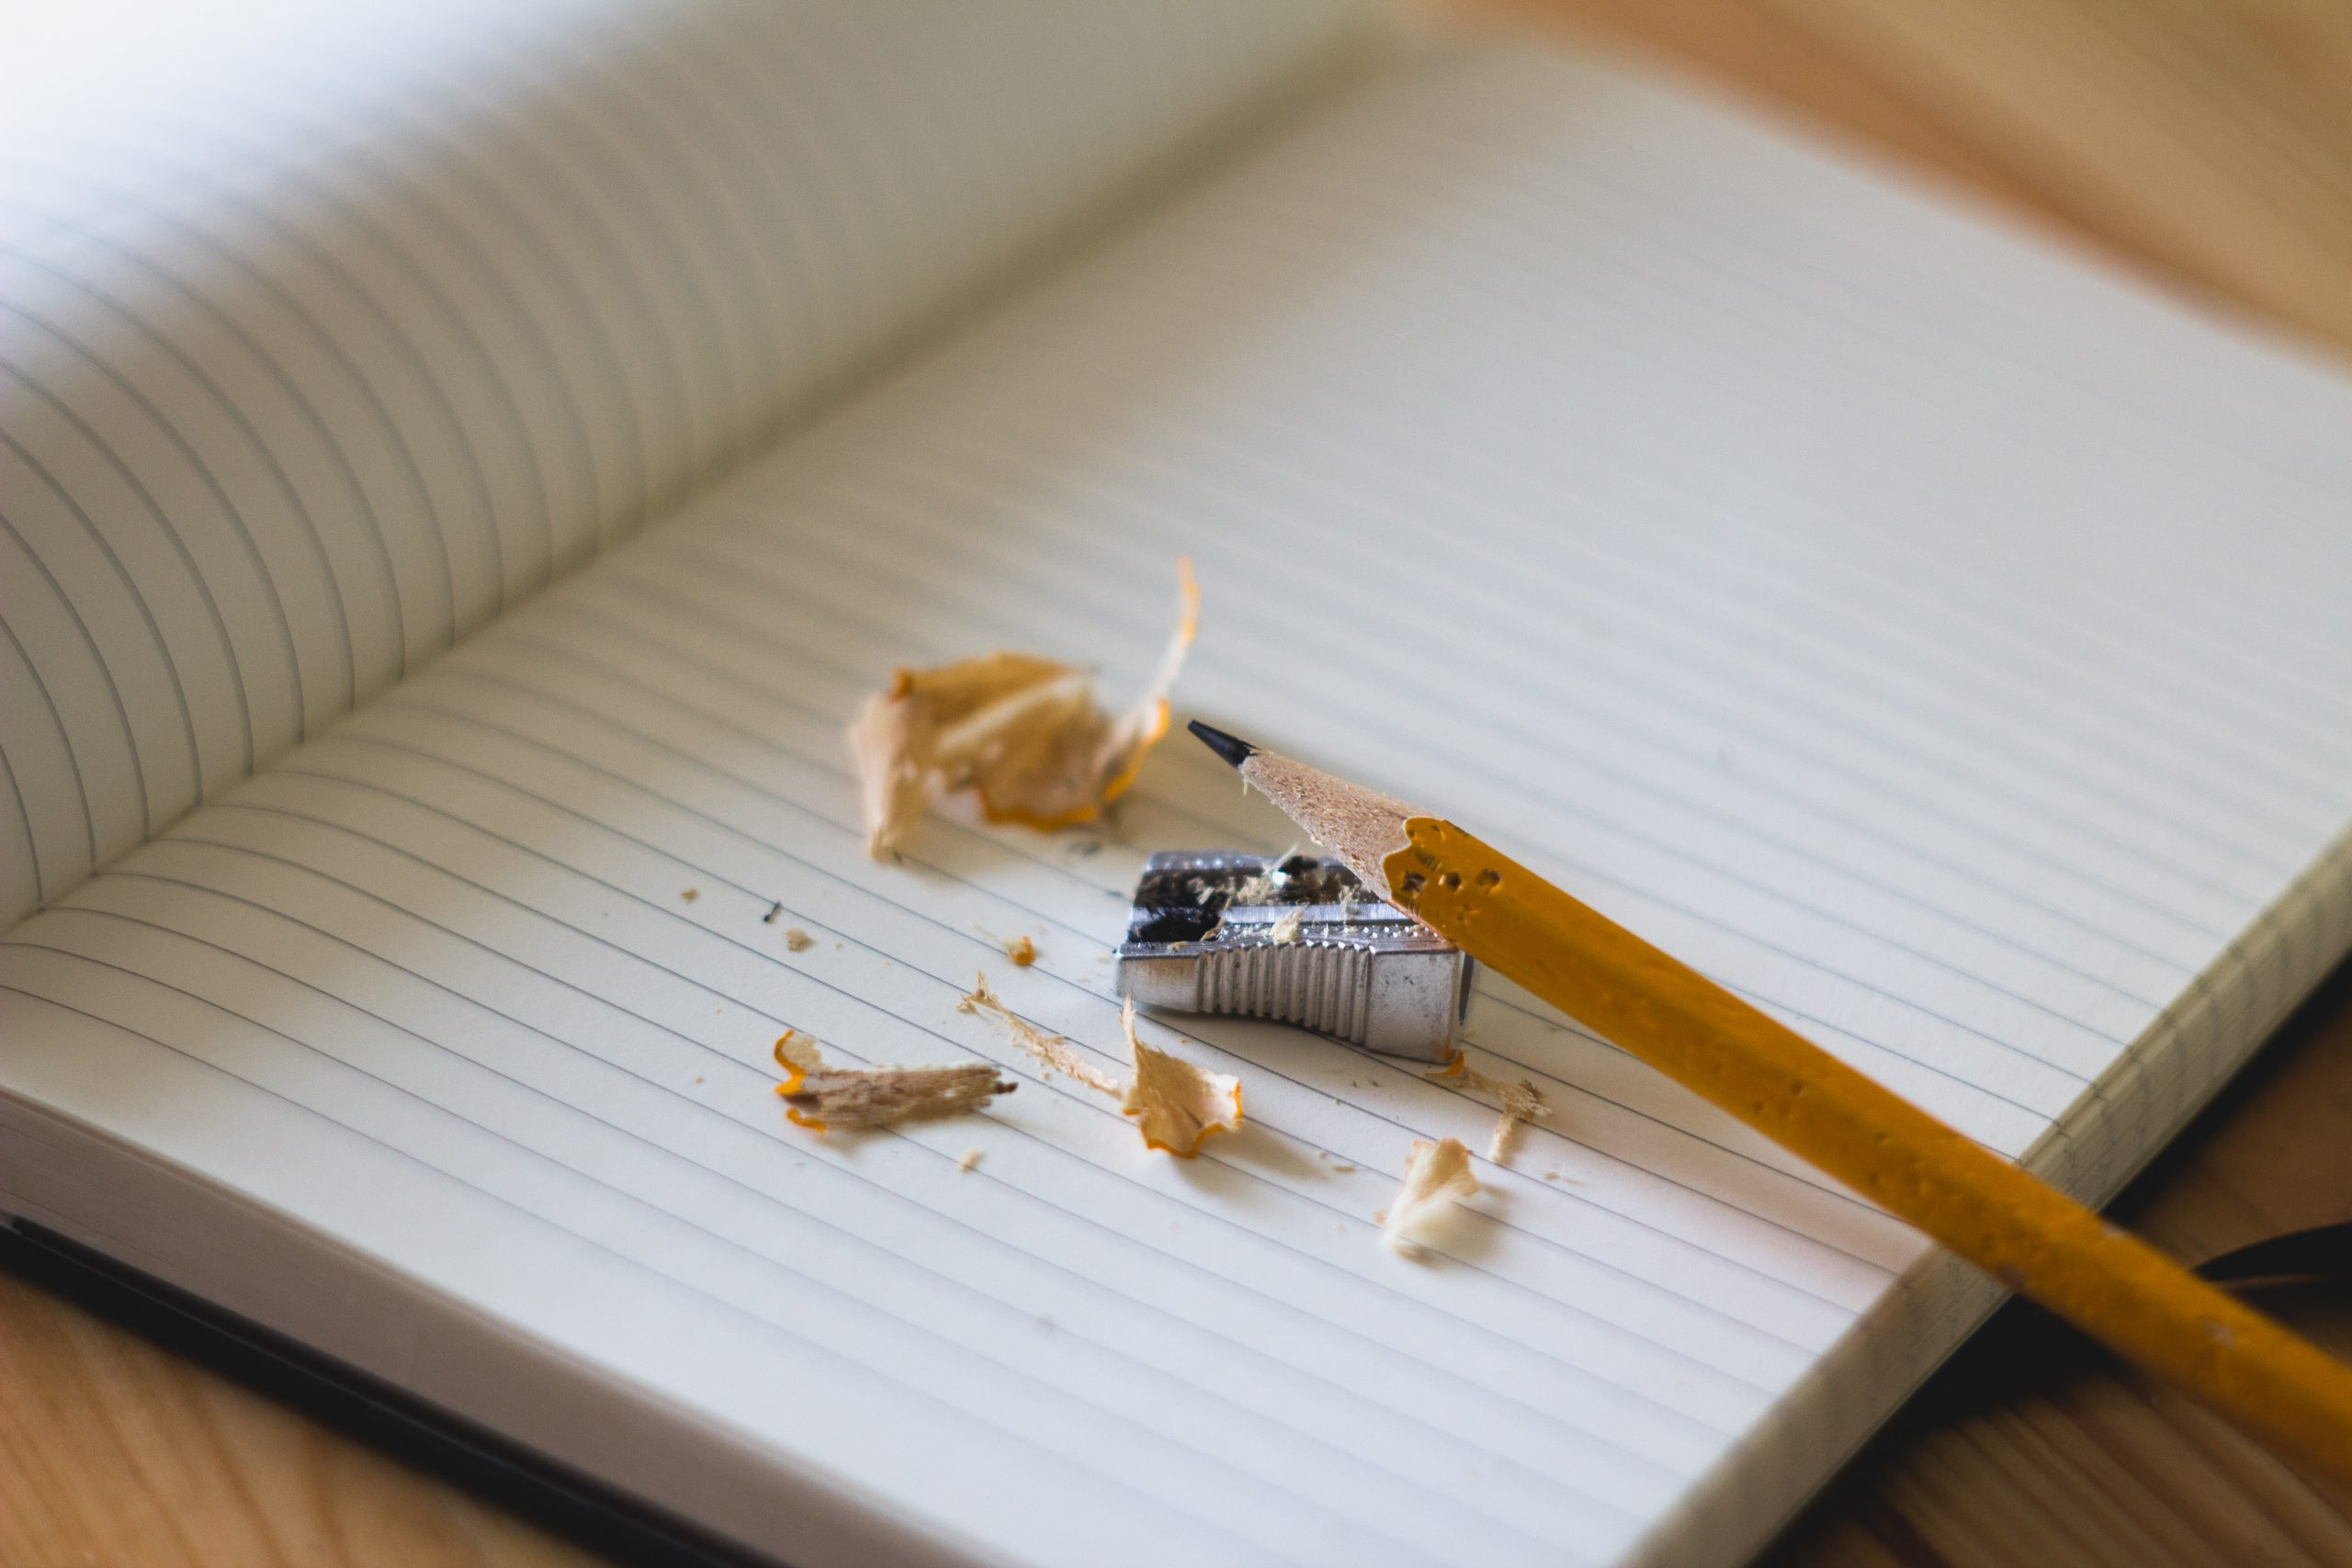 A pencil sits on top of an opened, lined notebook. Next to it is a sharpener and pencil sharpenings.